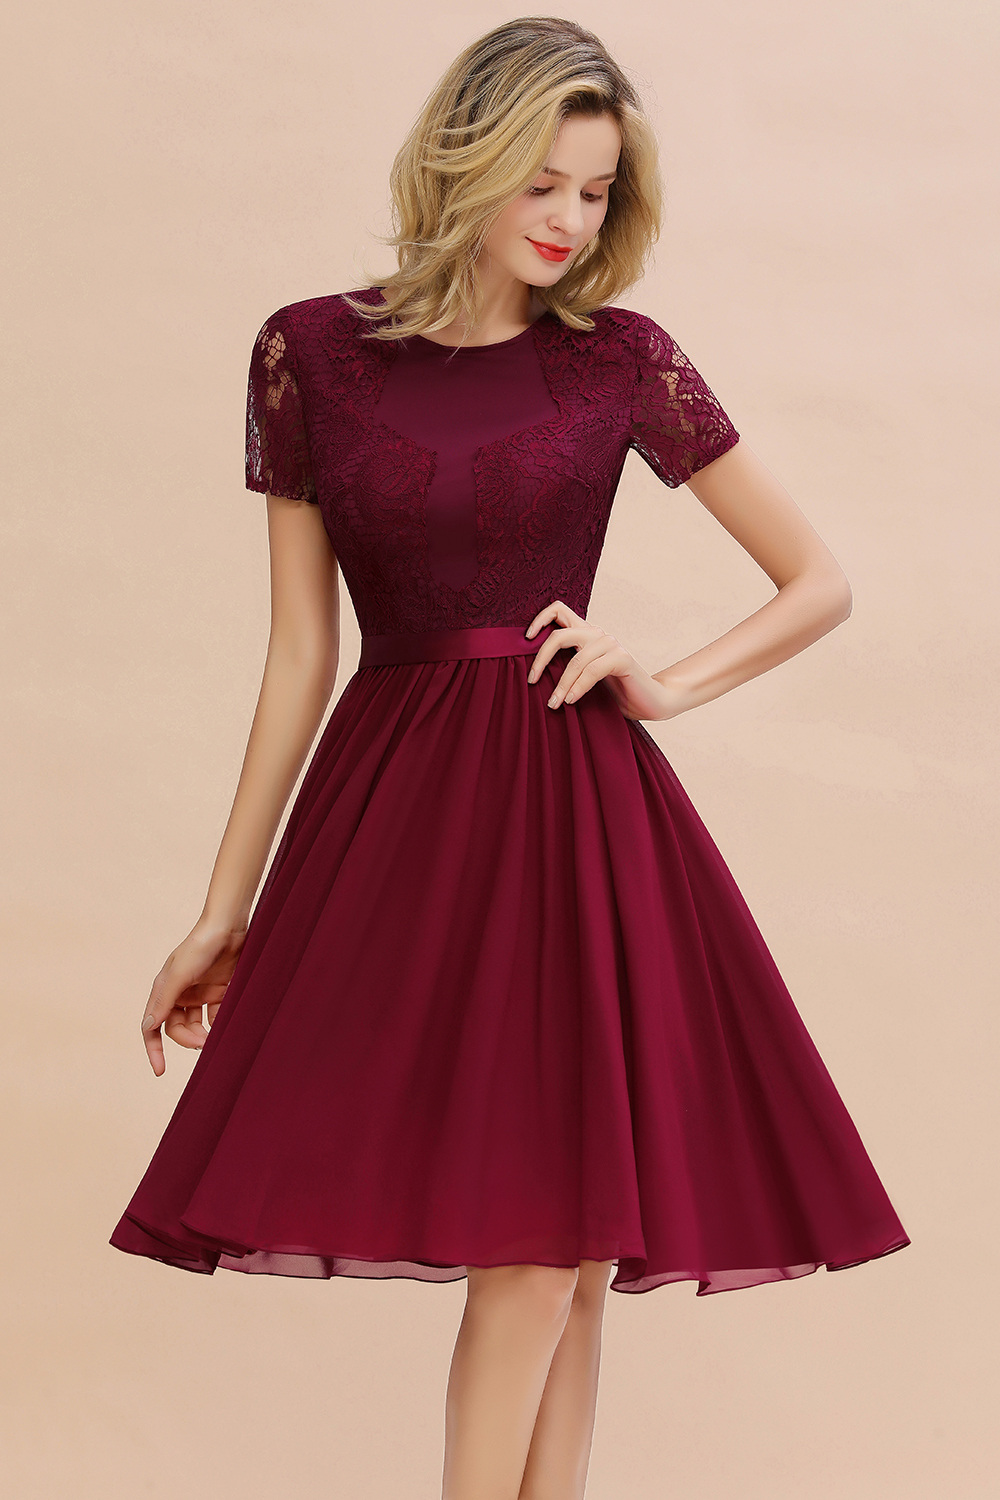 2020 Knee Length Cocktail Dresses Sexy Lace Short Formal Party Gown Elegant Women robe coctail